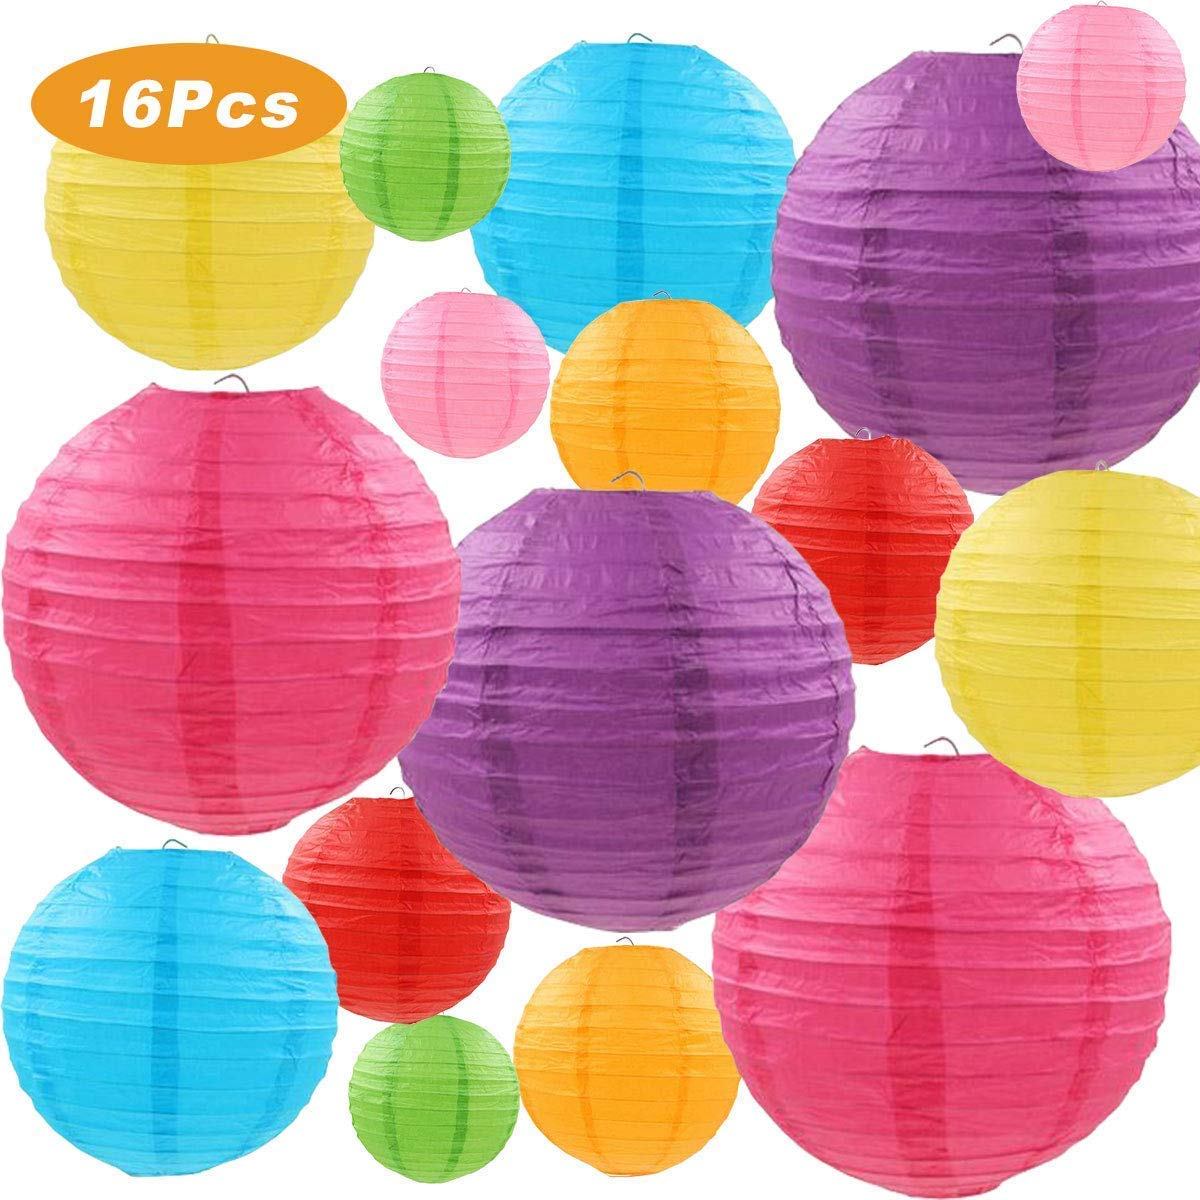 16 Pcs Colorful Paper Lanterns, Chinese/Japanese Paper Hanging Decorations Ball Lanterns Lamps for Home Decor, Parties, and Weddings